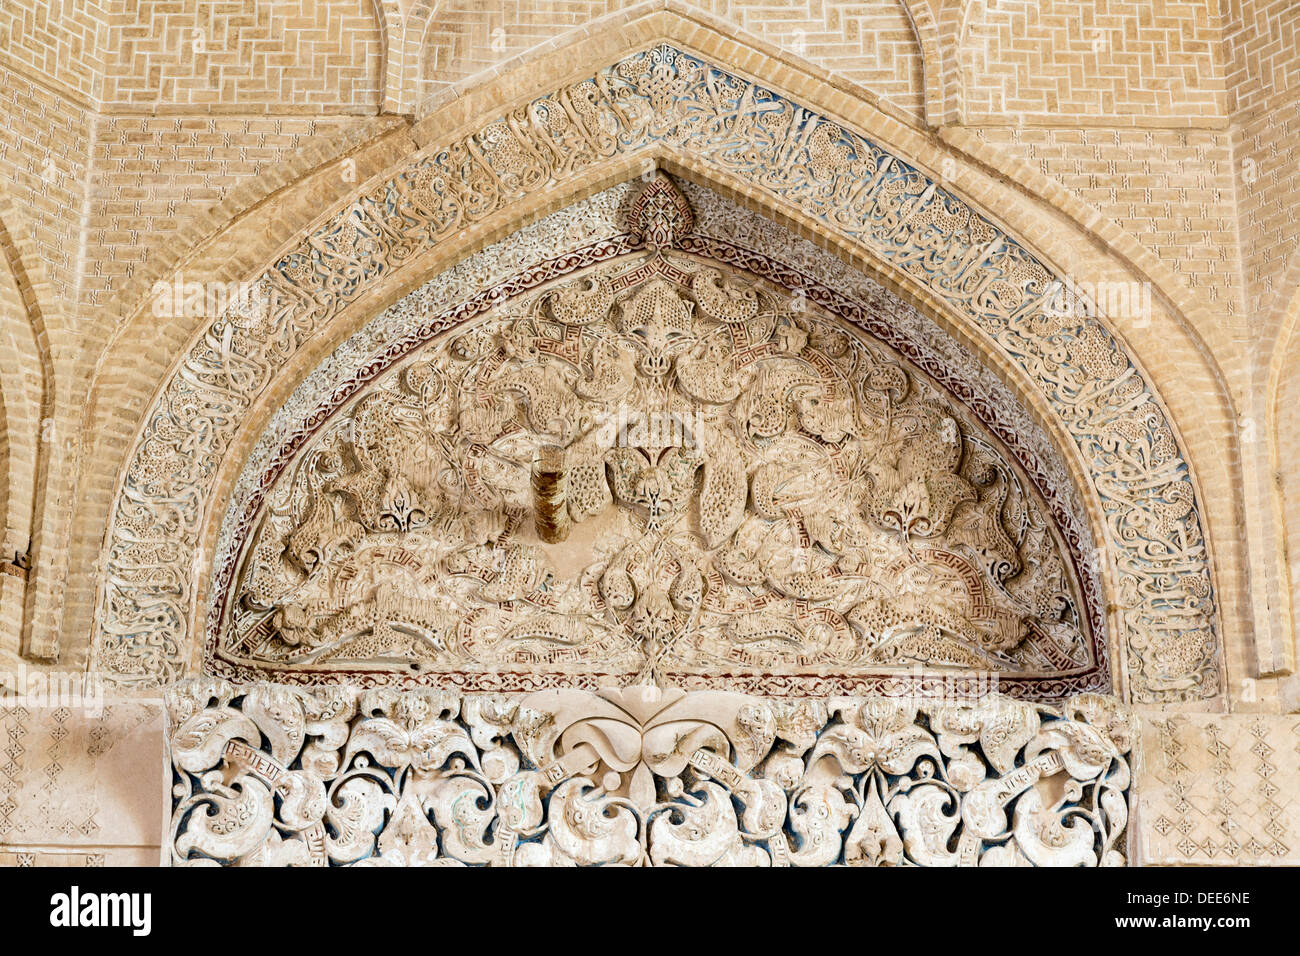 What Is A Mosque Detail: Detail Of Stucco Decoration In Mihrab, Friday Mosque Of